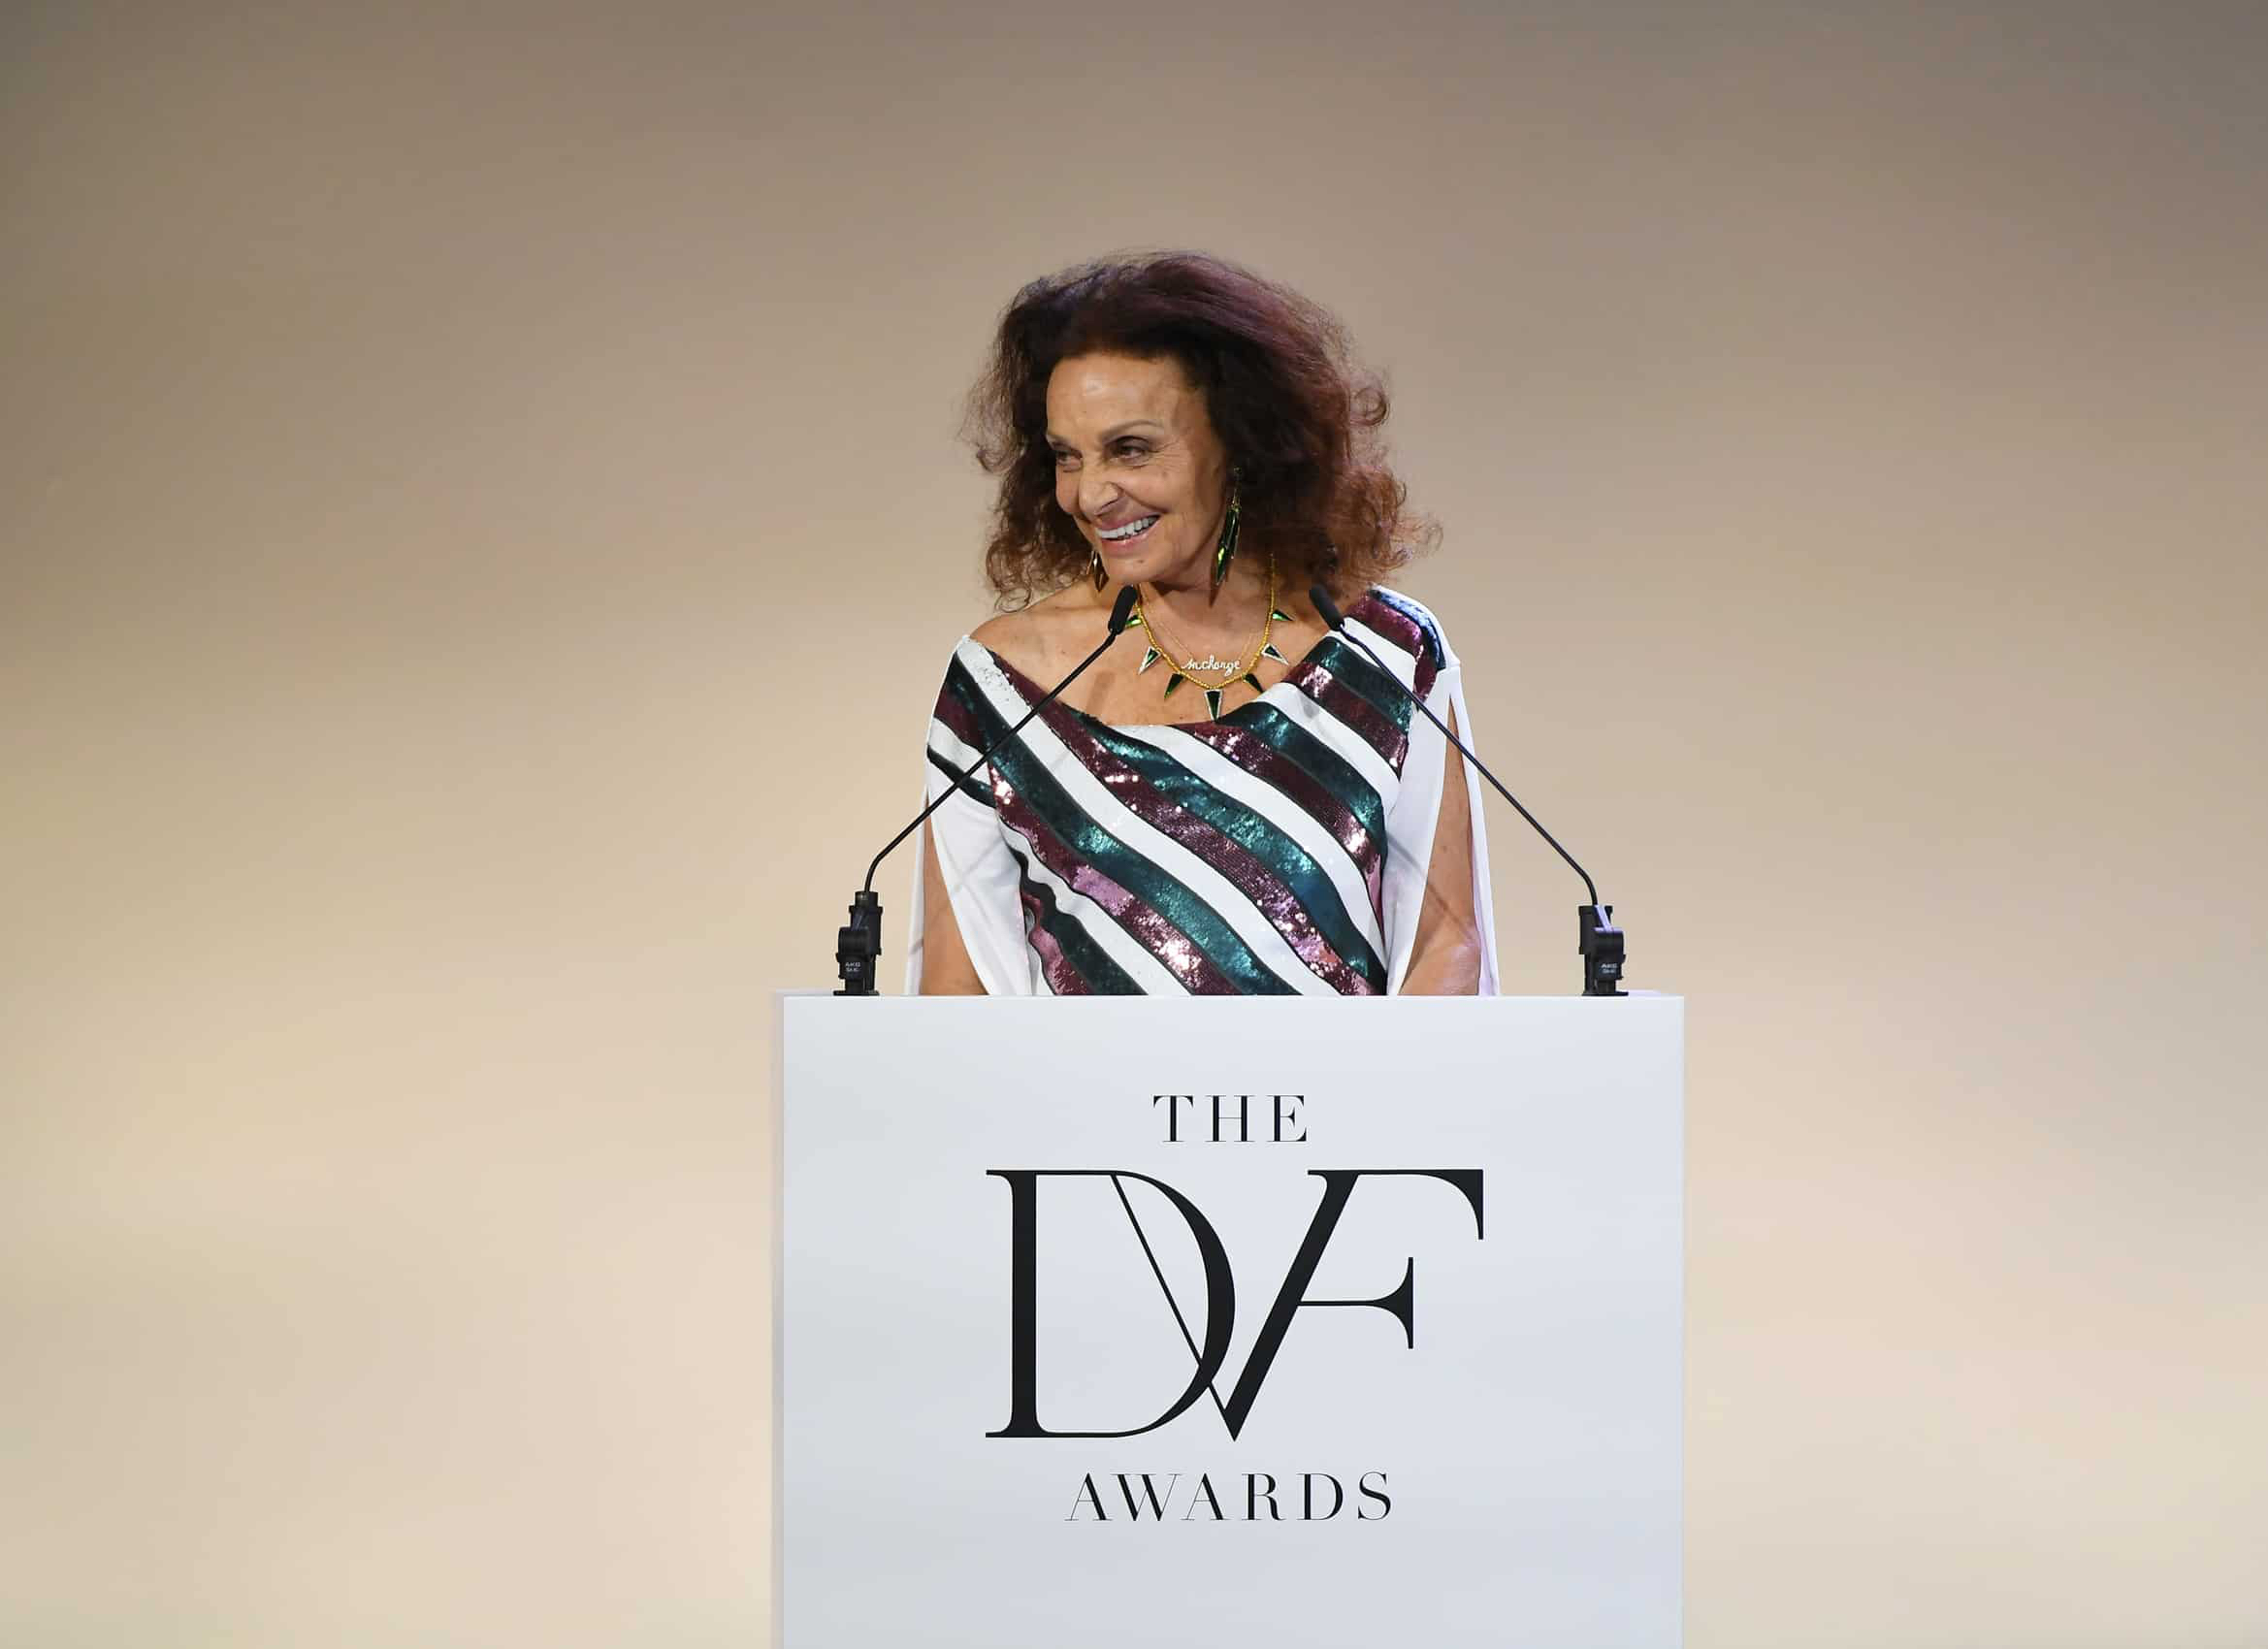 10th annual DVF awards